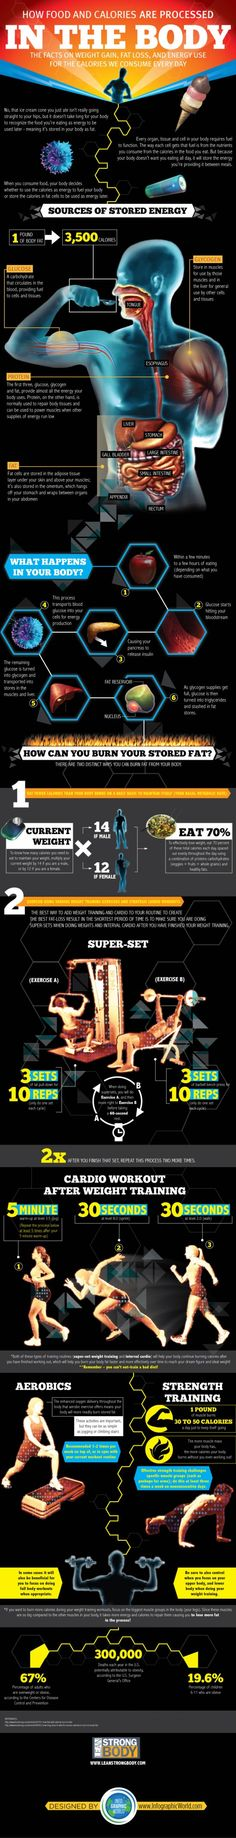 INFOGRAPHIC: HOW FOOD AND CALORIES ARE PROCESSED IN THE BODY